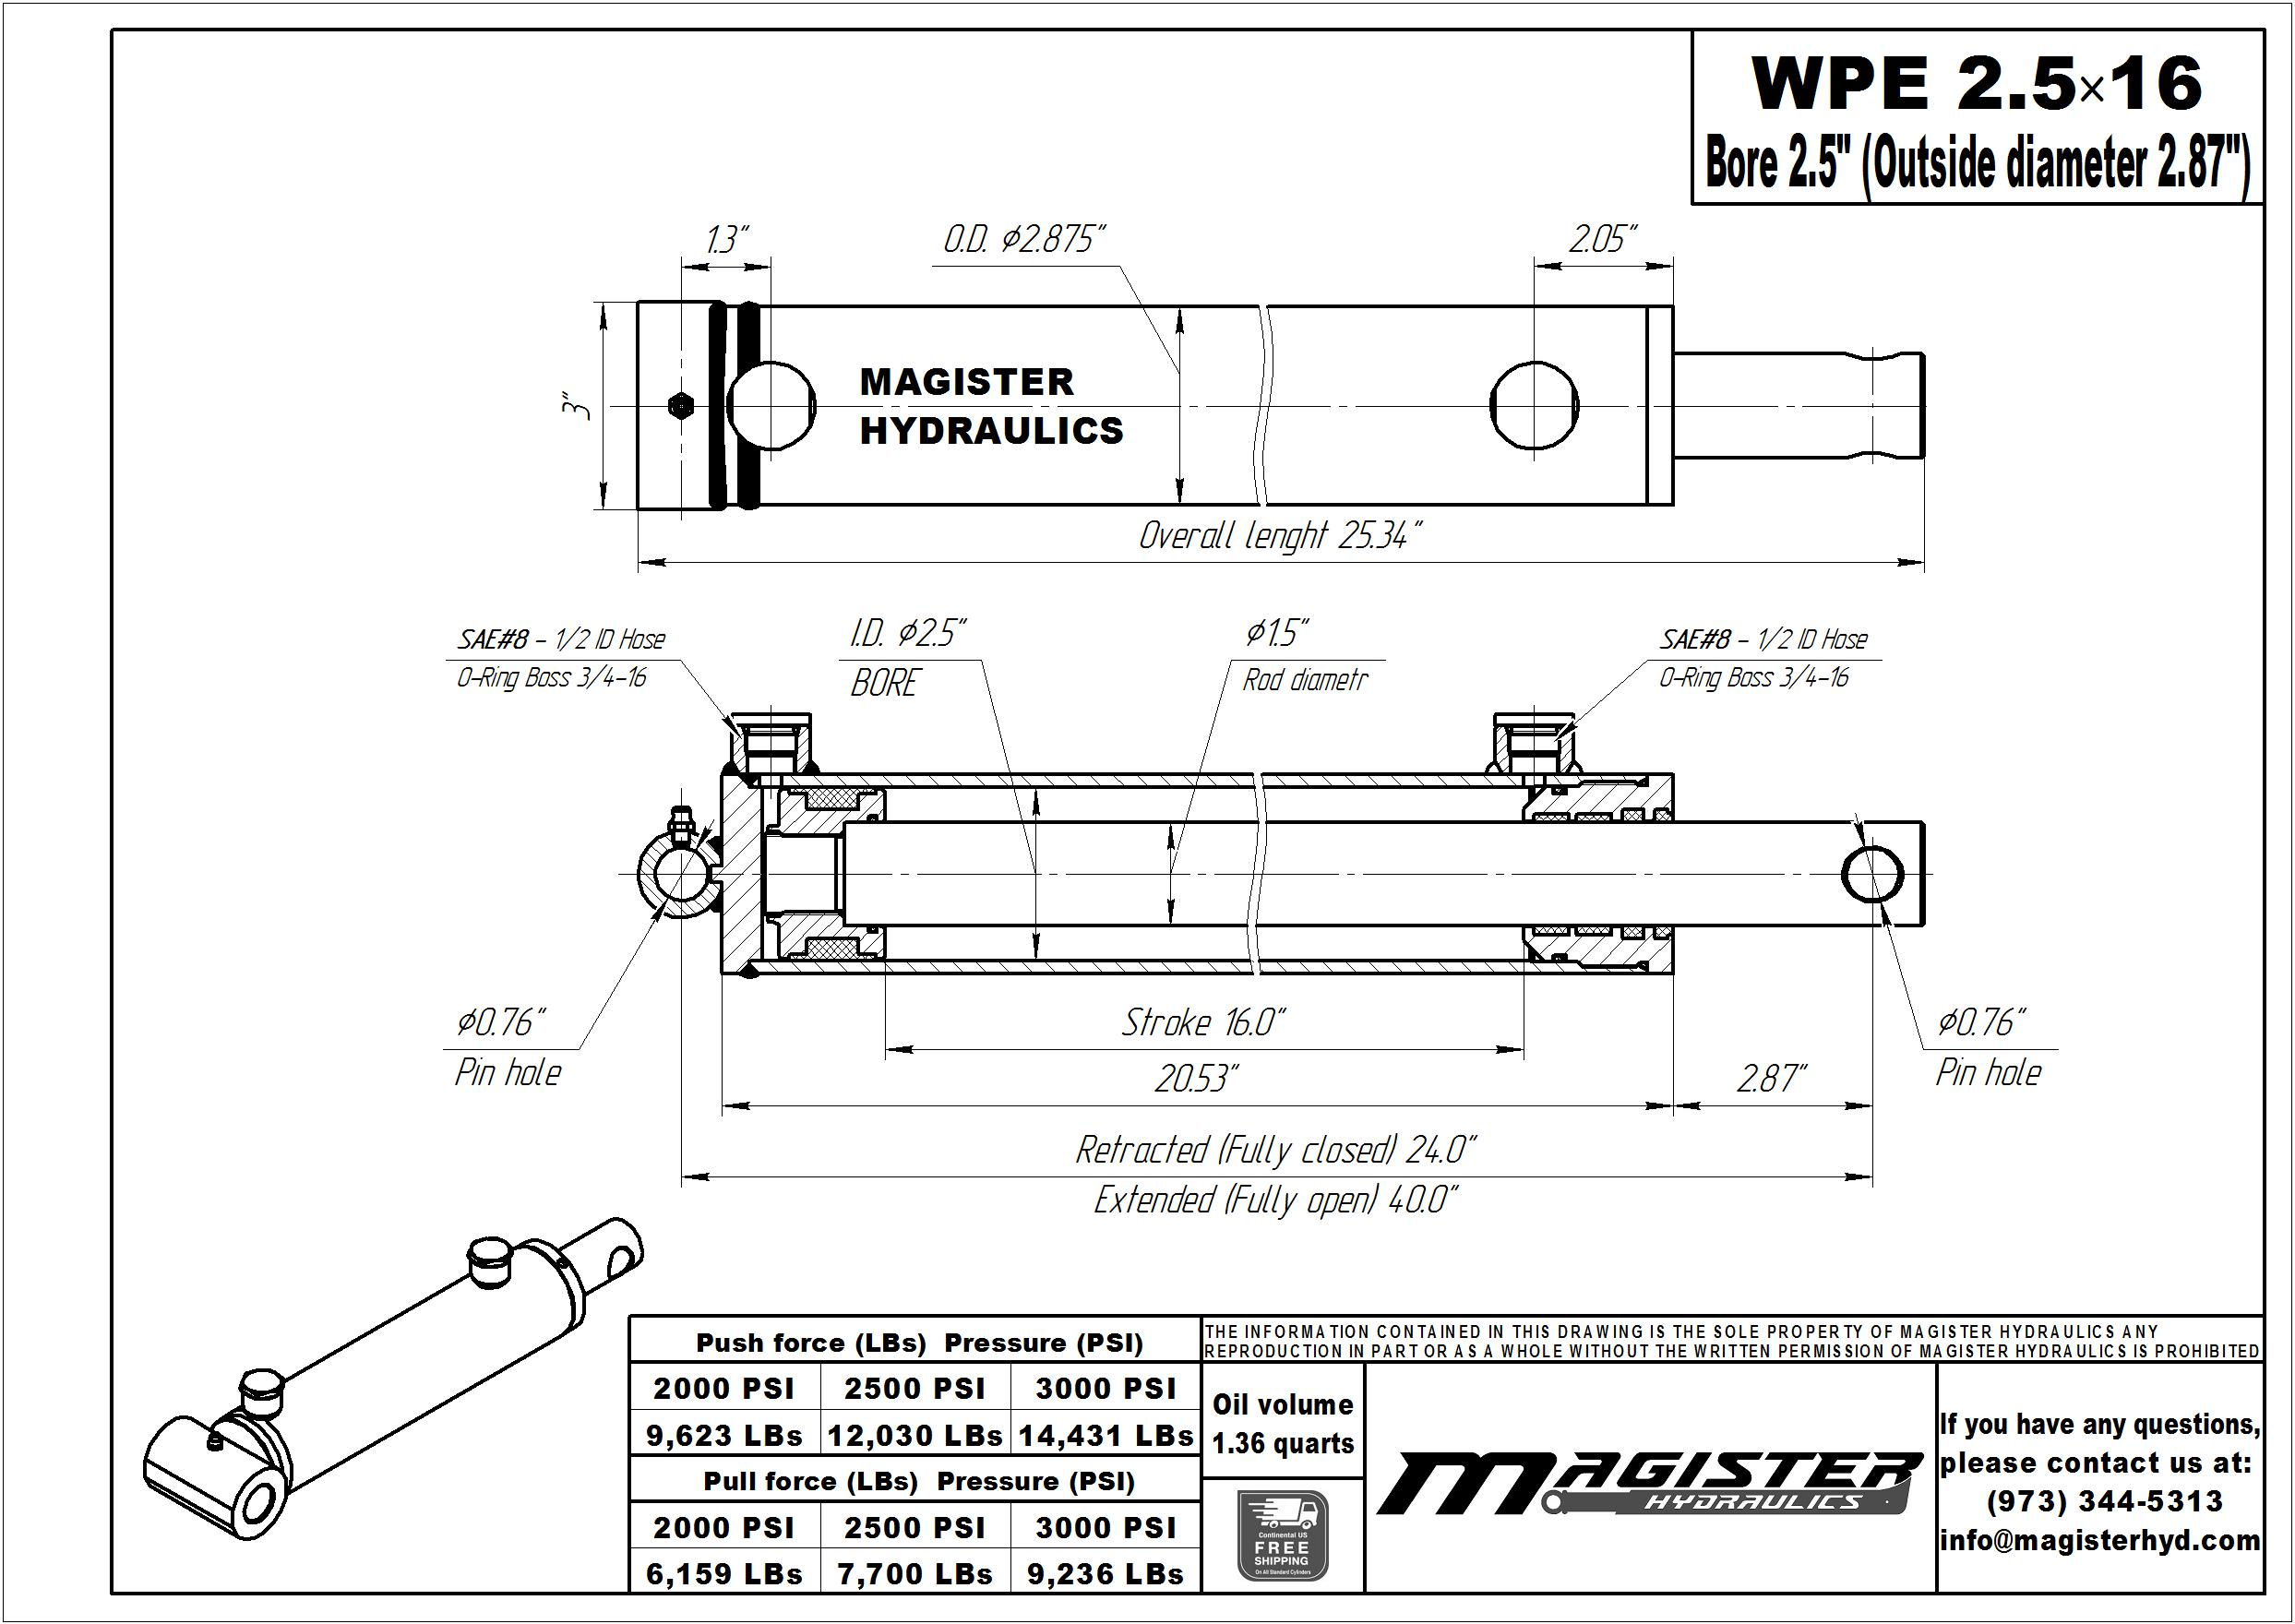 2.5 bore x 16 stroke hydraulic cylinder, welded pin eye double acting cylinder | Magister Hydraulics